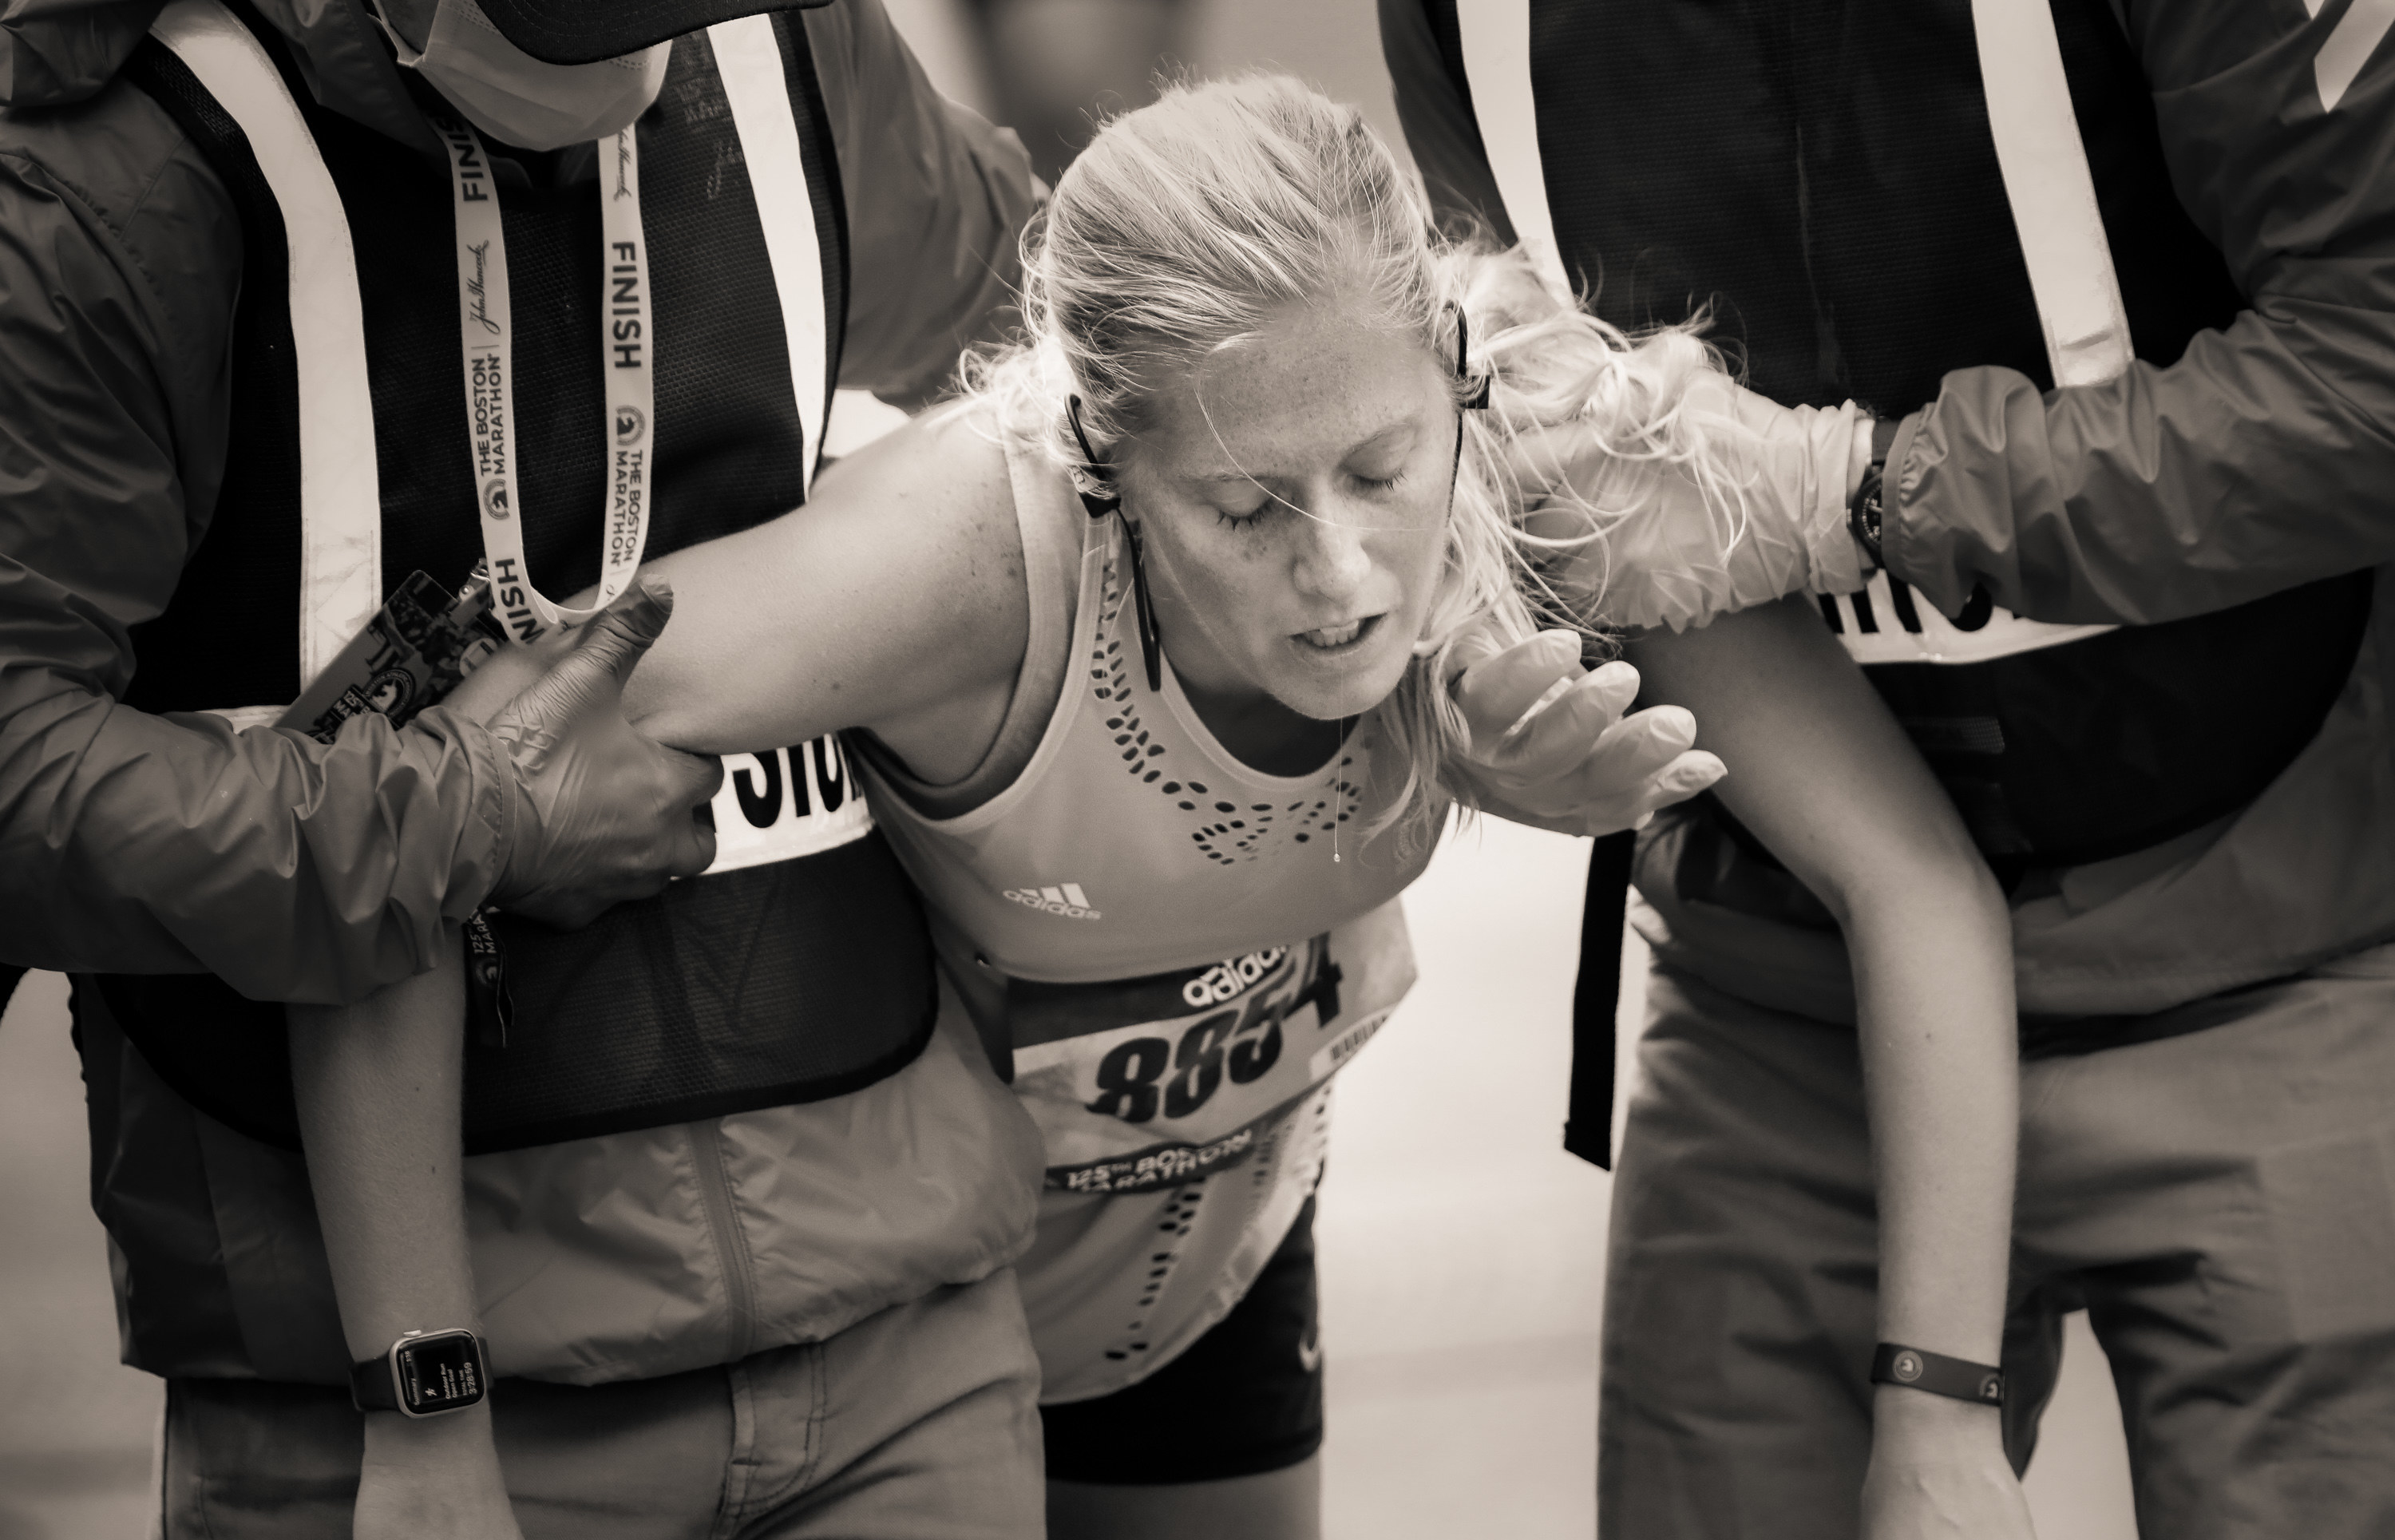 Two race attendants help a woman who has nearly collapsed at the marathon